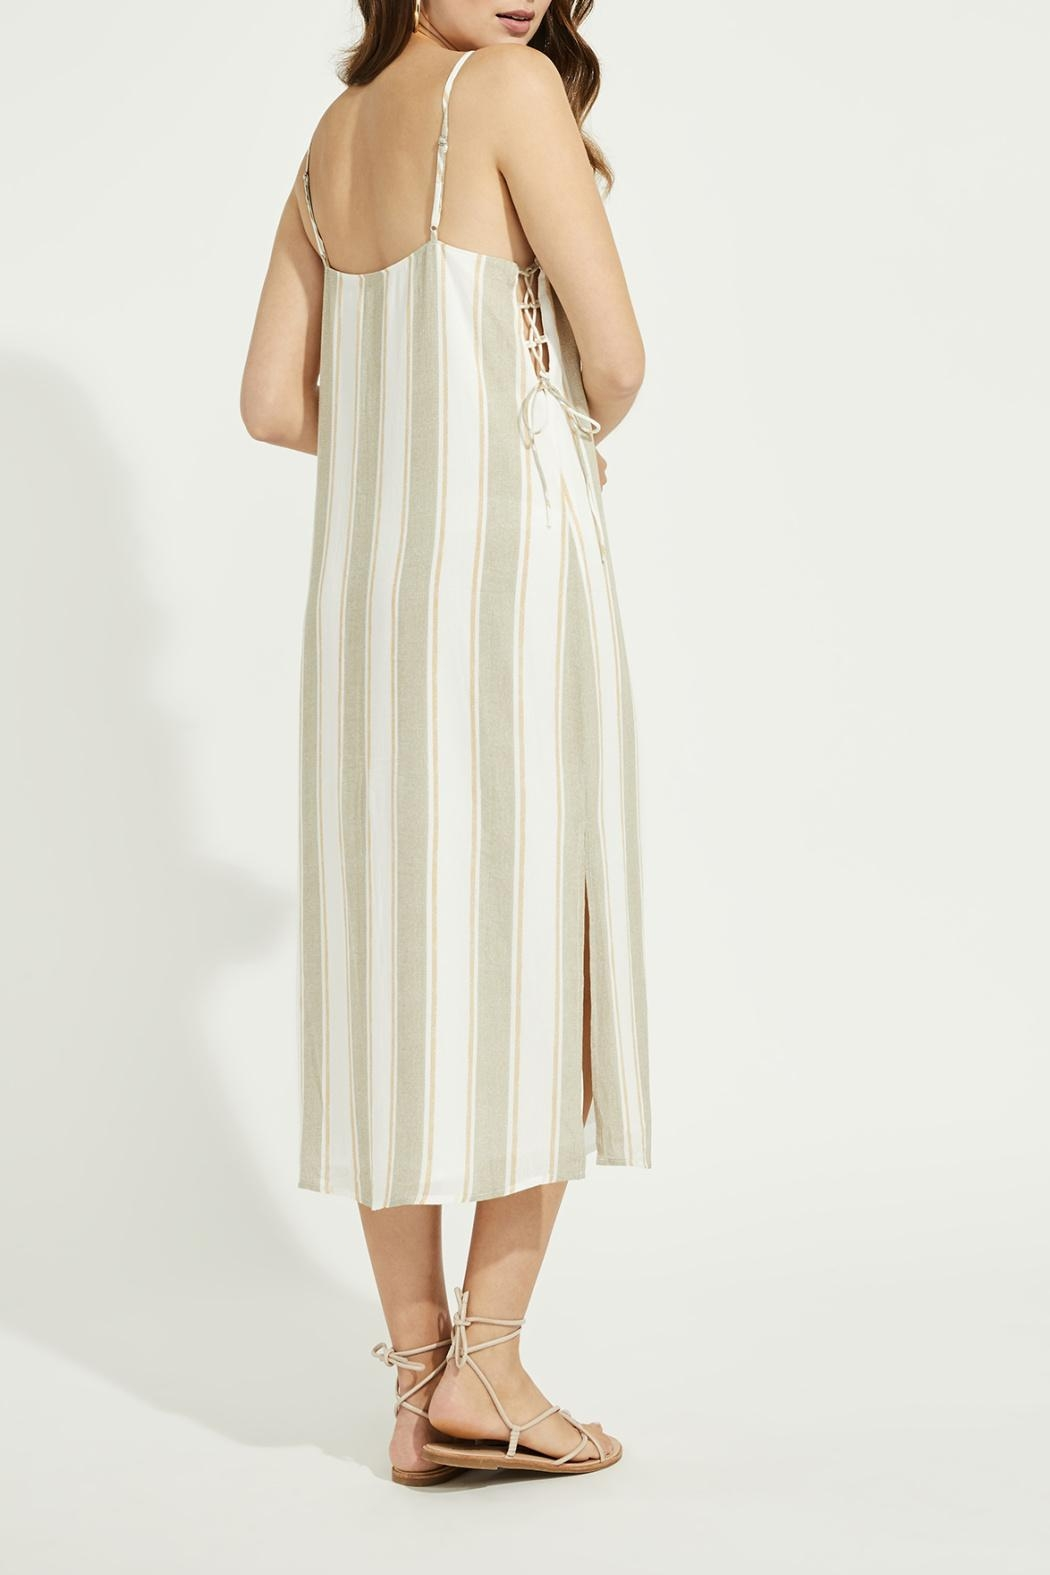 Gentle Fawn Side Lace Up Dress - Back Cropped Image